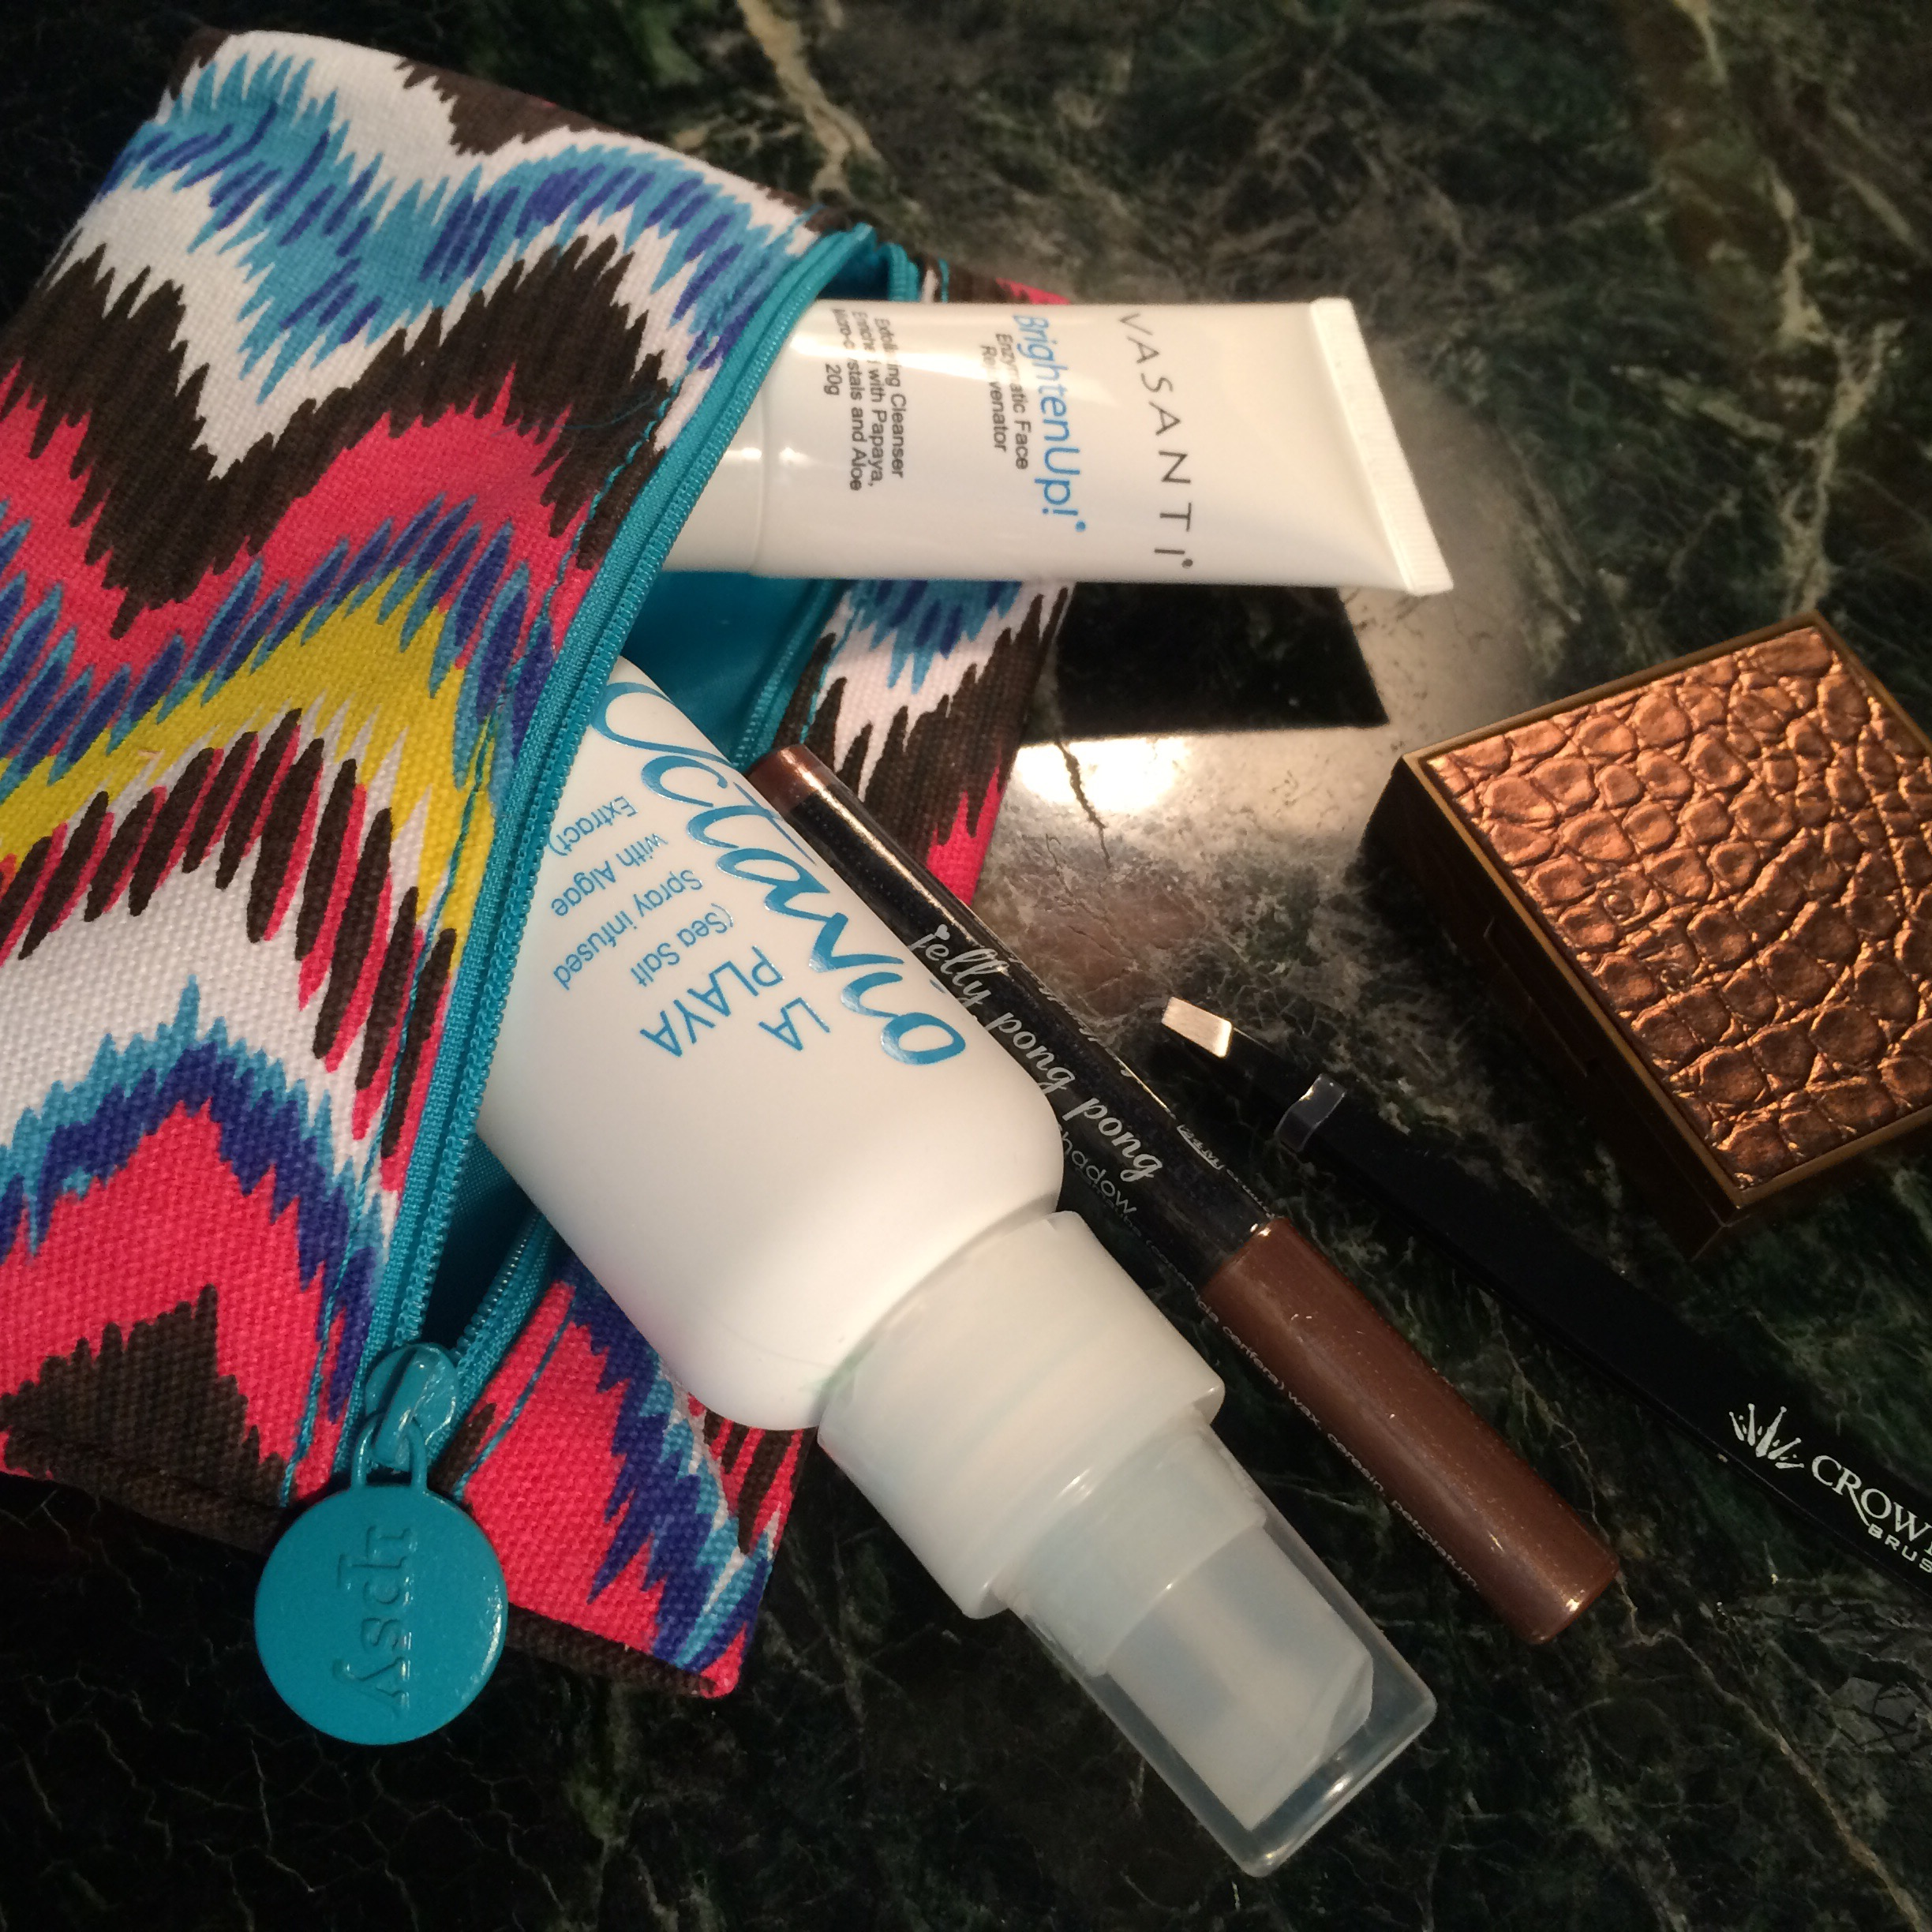 Ipsy Glambag July 2015 and EWG Skin Deep Cosmetics Database Scores via ClothingCult.com